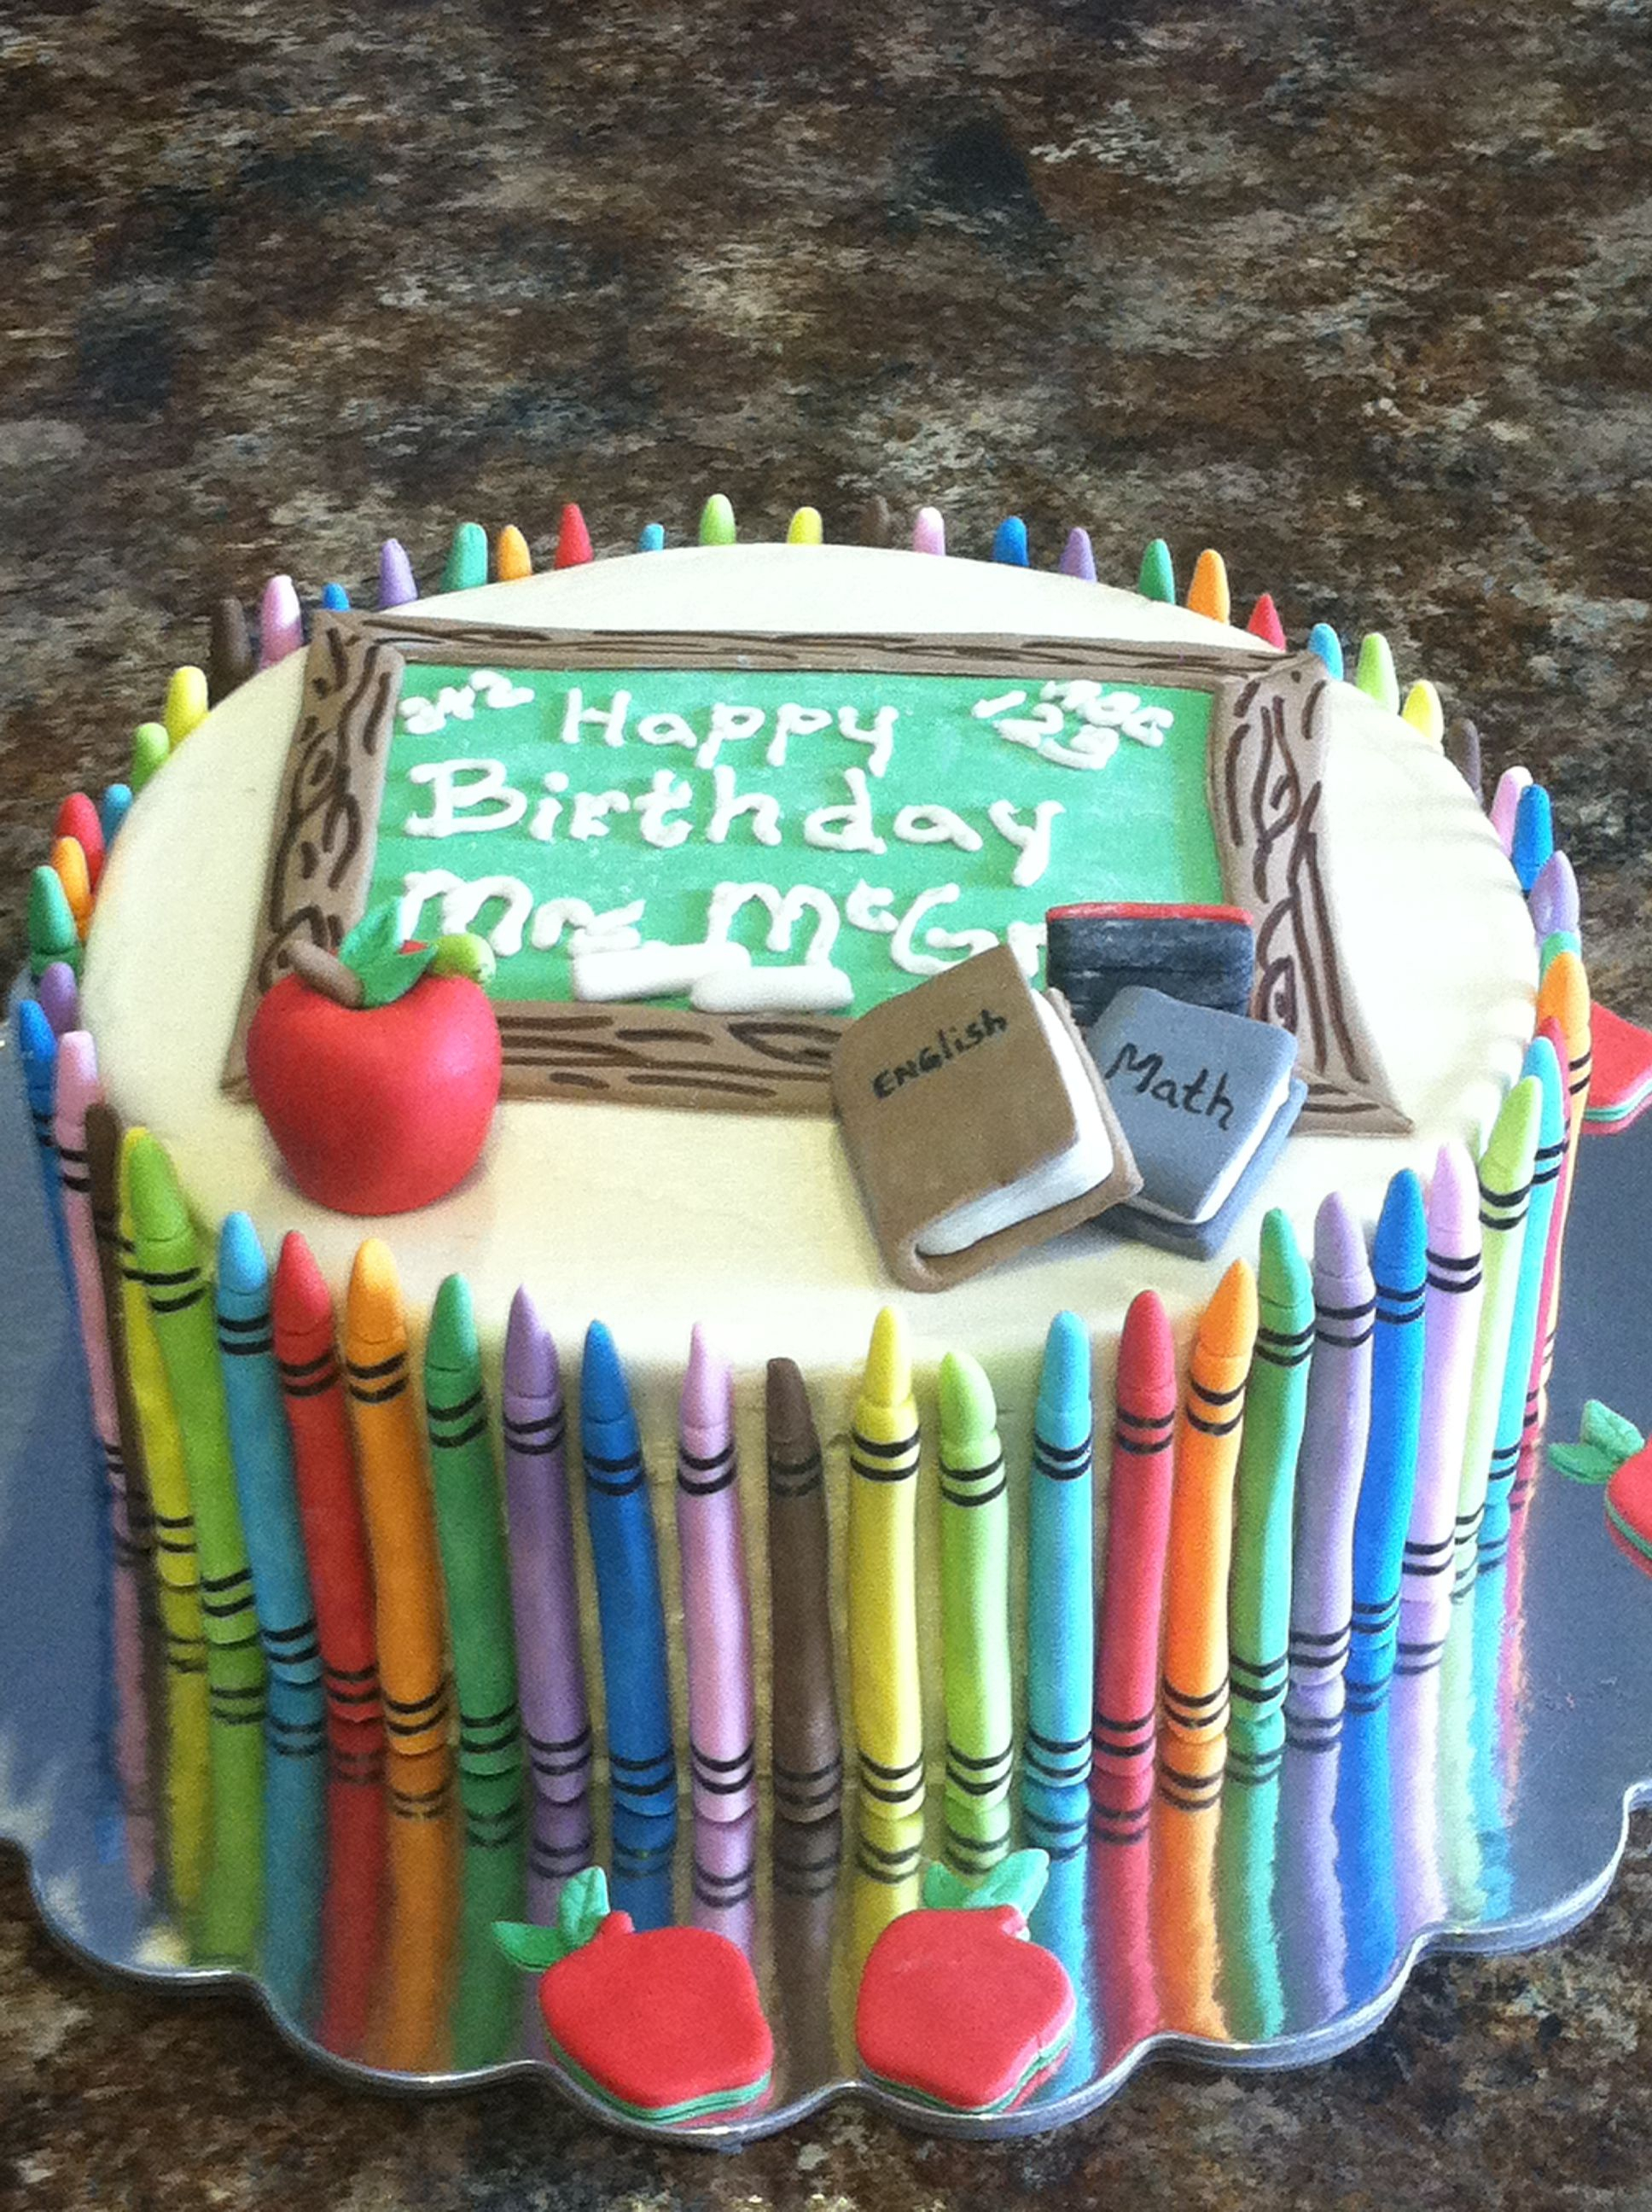 Creative Birthday Cakes 1st Grade Teacher Cake Great For A Creative Birthday Party Too